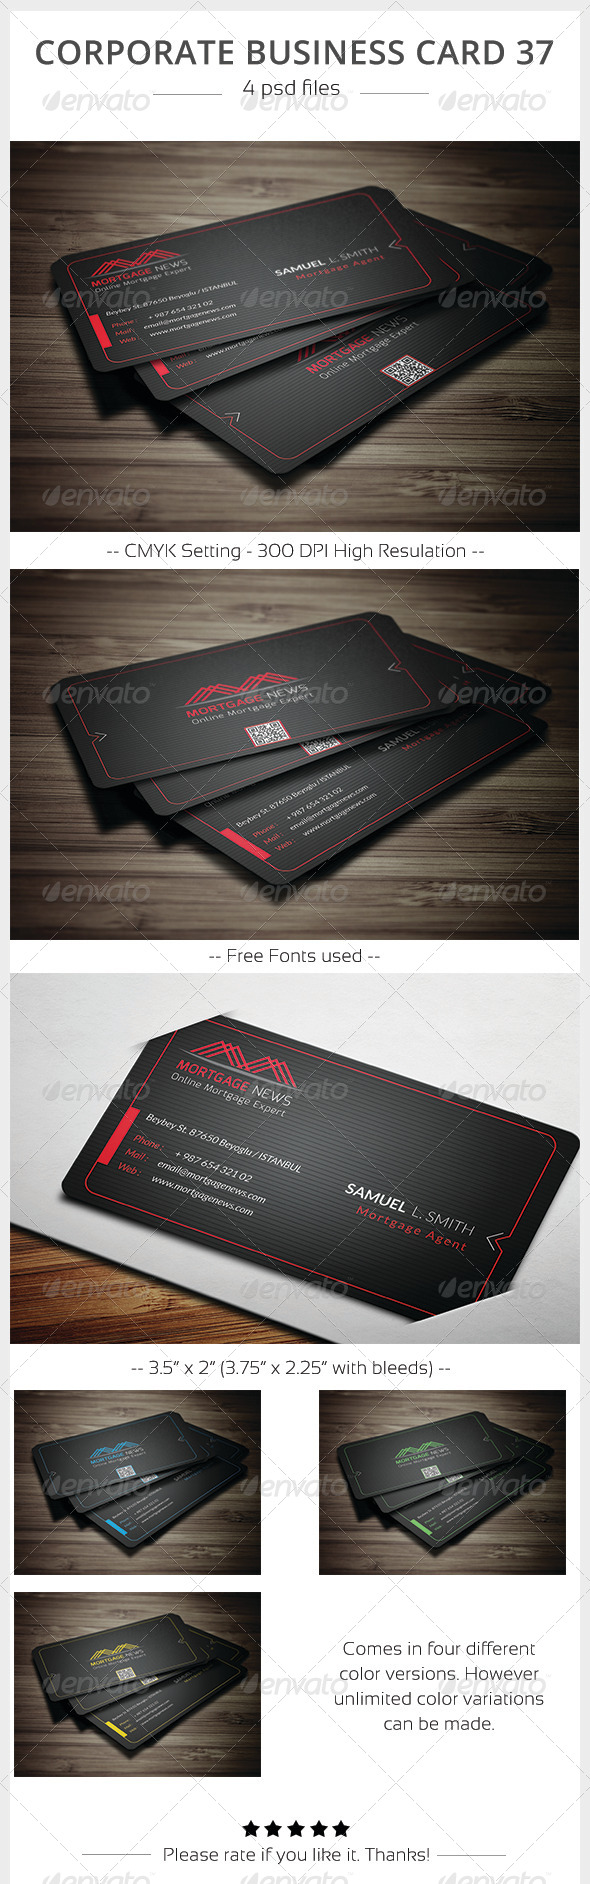 Corporate Business Card 37